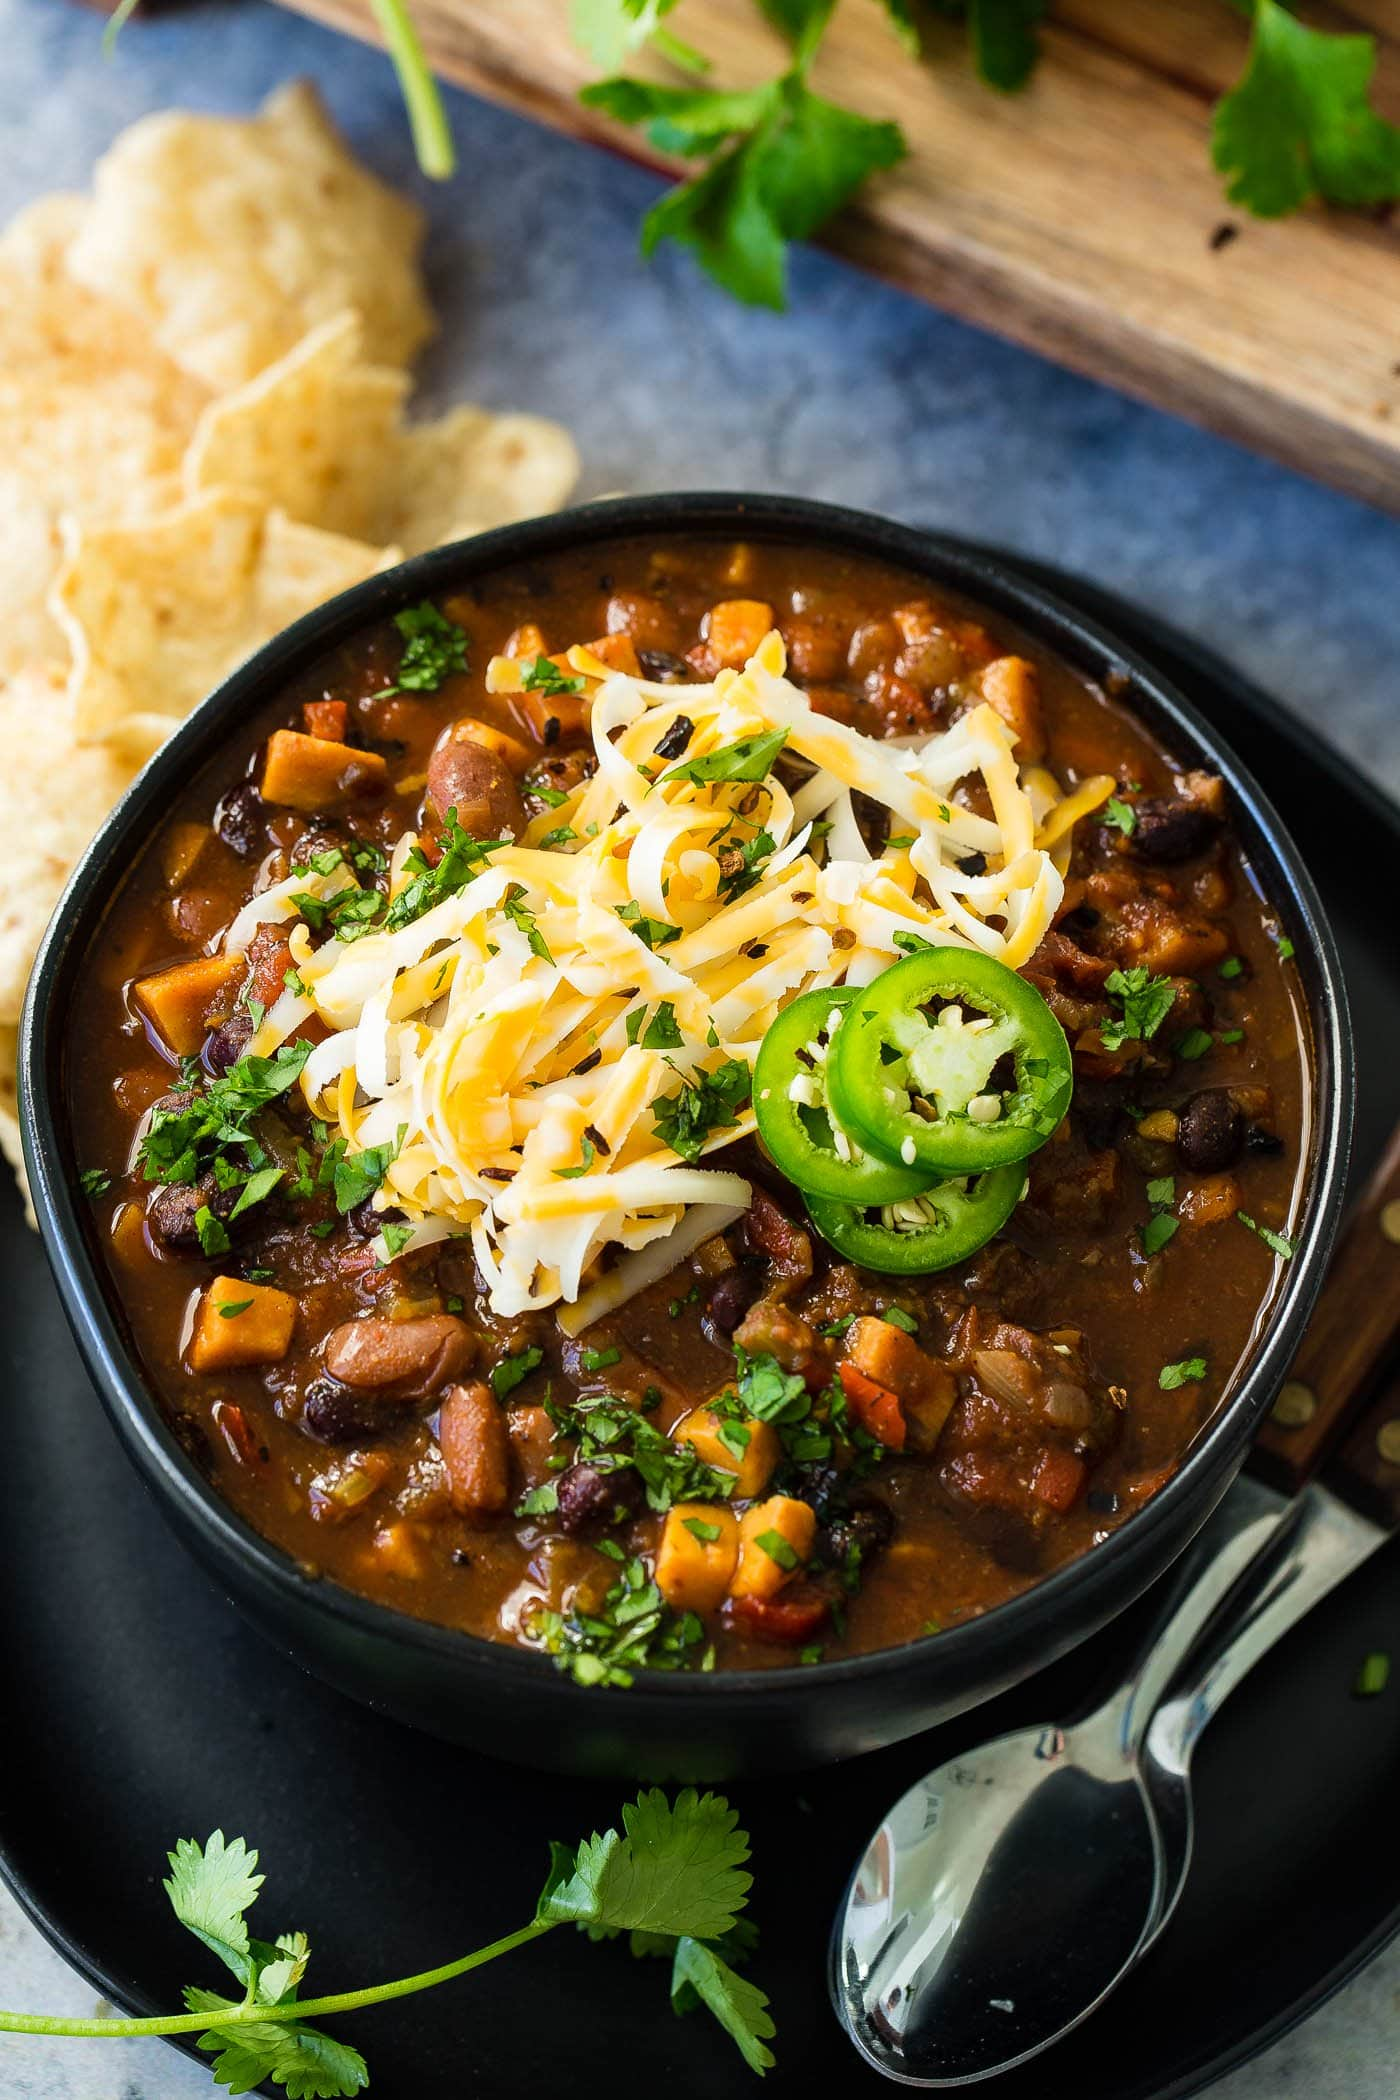 A photo of a bowl of hearty vegetarian chili topped with shredded cheese and sliced jalapeno.